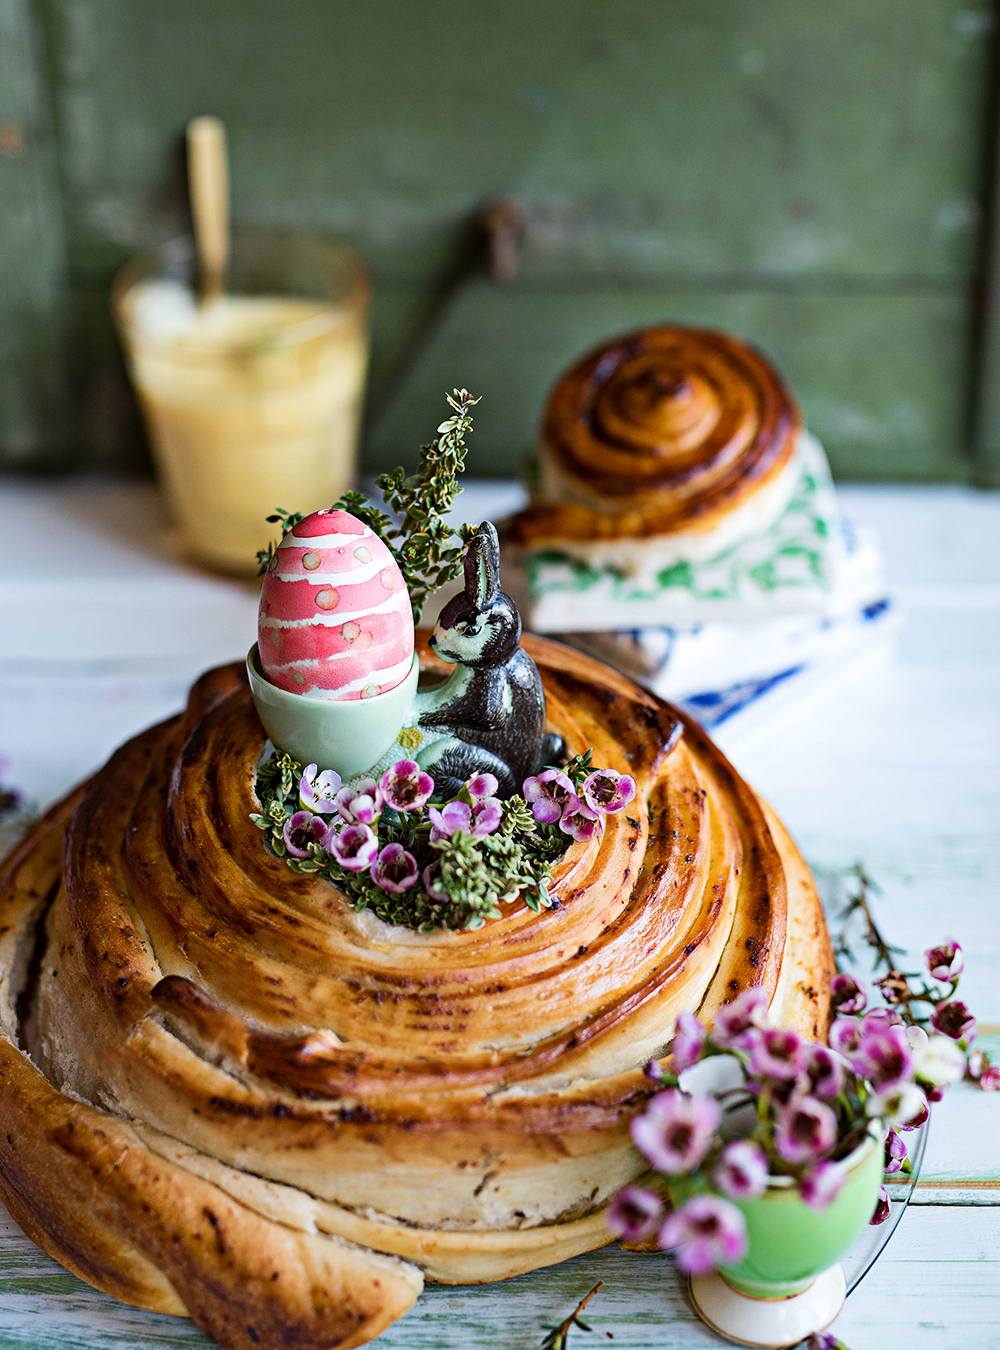 Rundes Lemon Curd Zupfbrot mit Zitronenthymian - Pull Apart bread